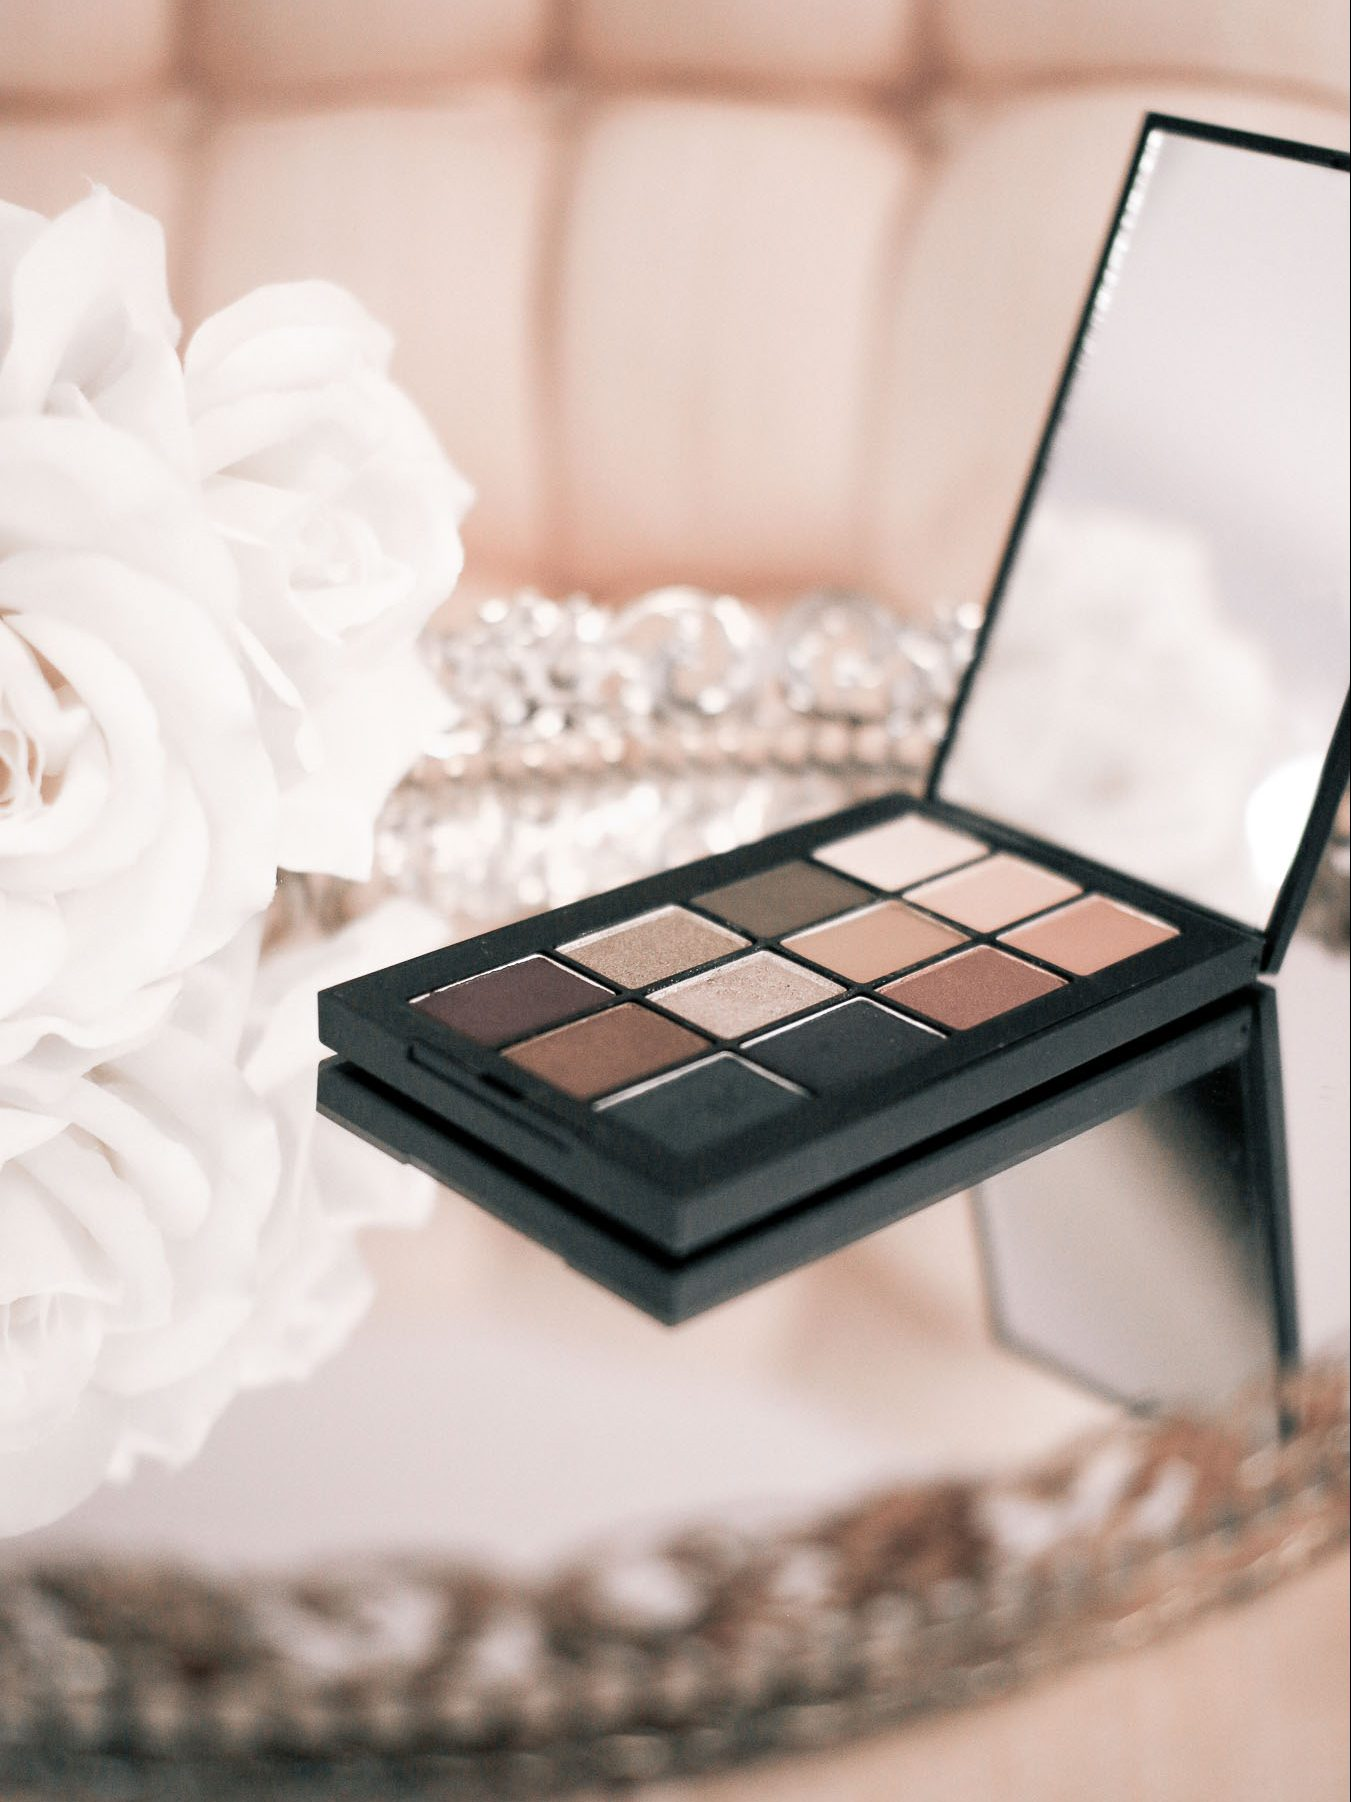 NARS eyeshadow palette, makeup products